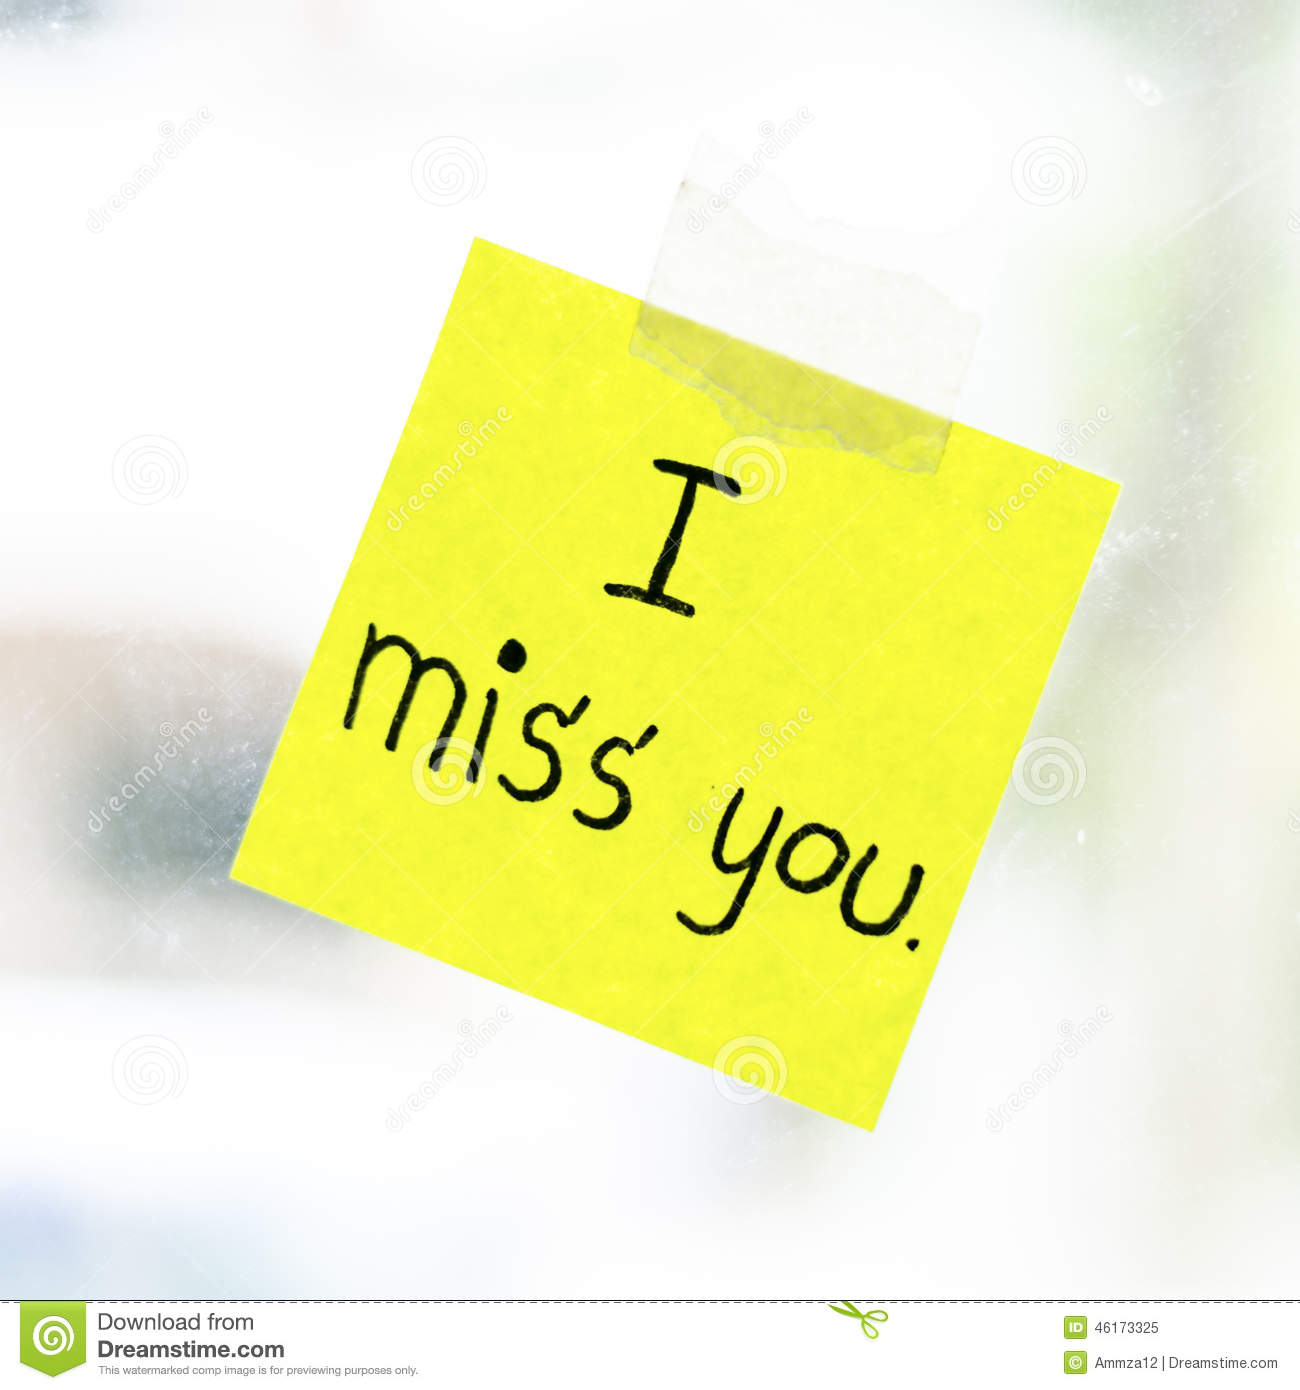 I Miss You Word On Sticky Note Stock Photo - Image: 46160724